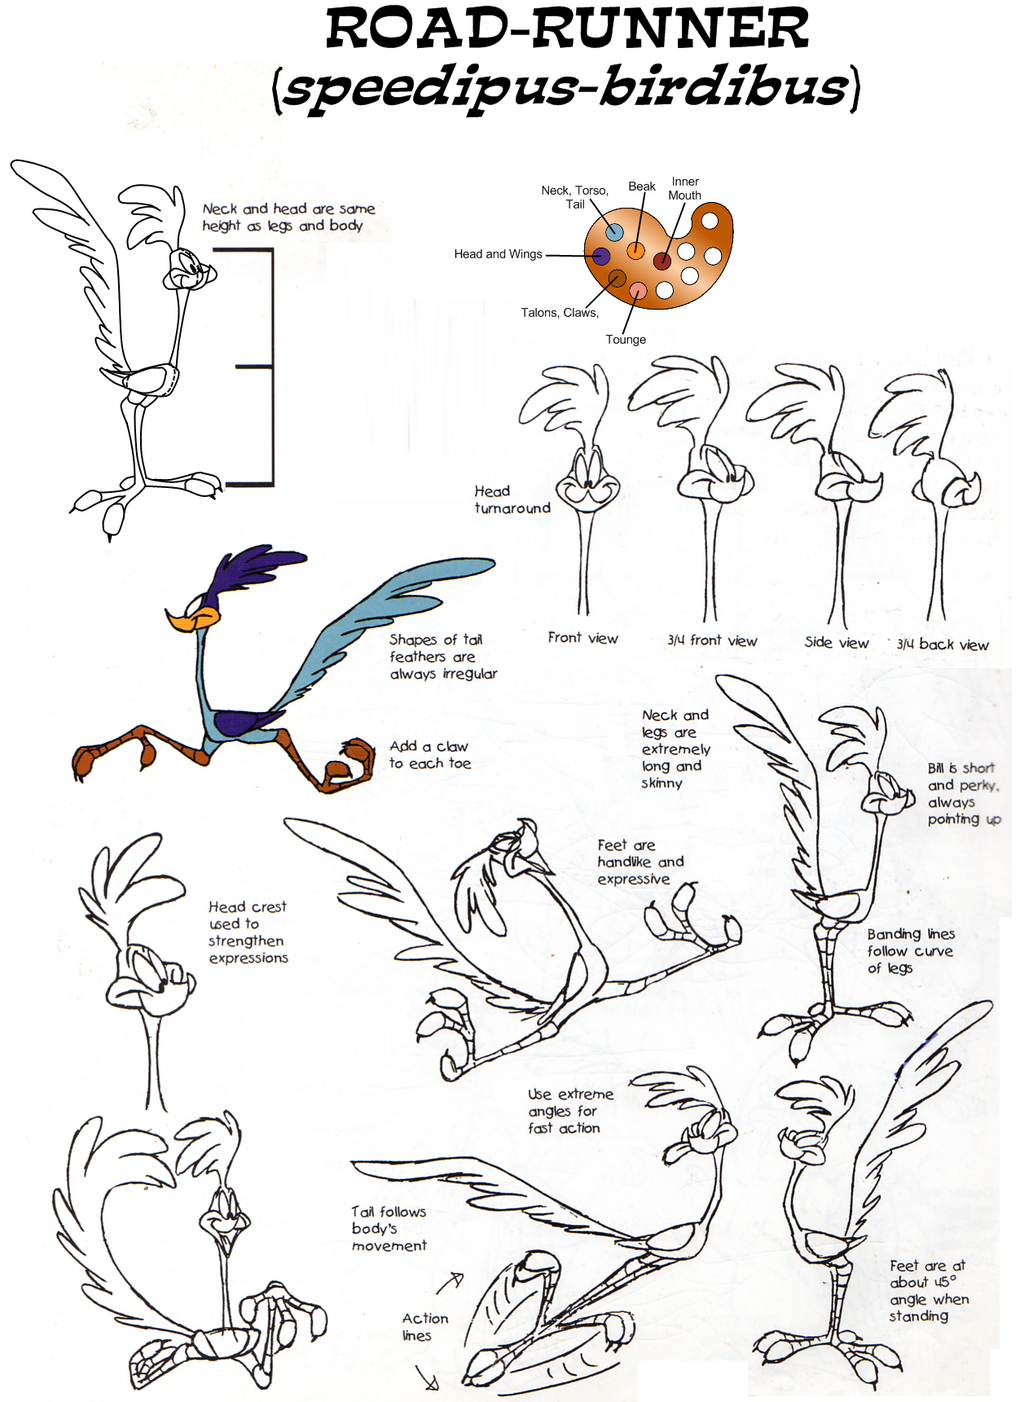 Road Runner Model Sheet 381694389 also Chuck Jones 180952159 in addition Model Sheets as well  additionally Yosemite Sam Model Sheet Ver 3 426765027. on elmer fudd model sheets